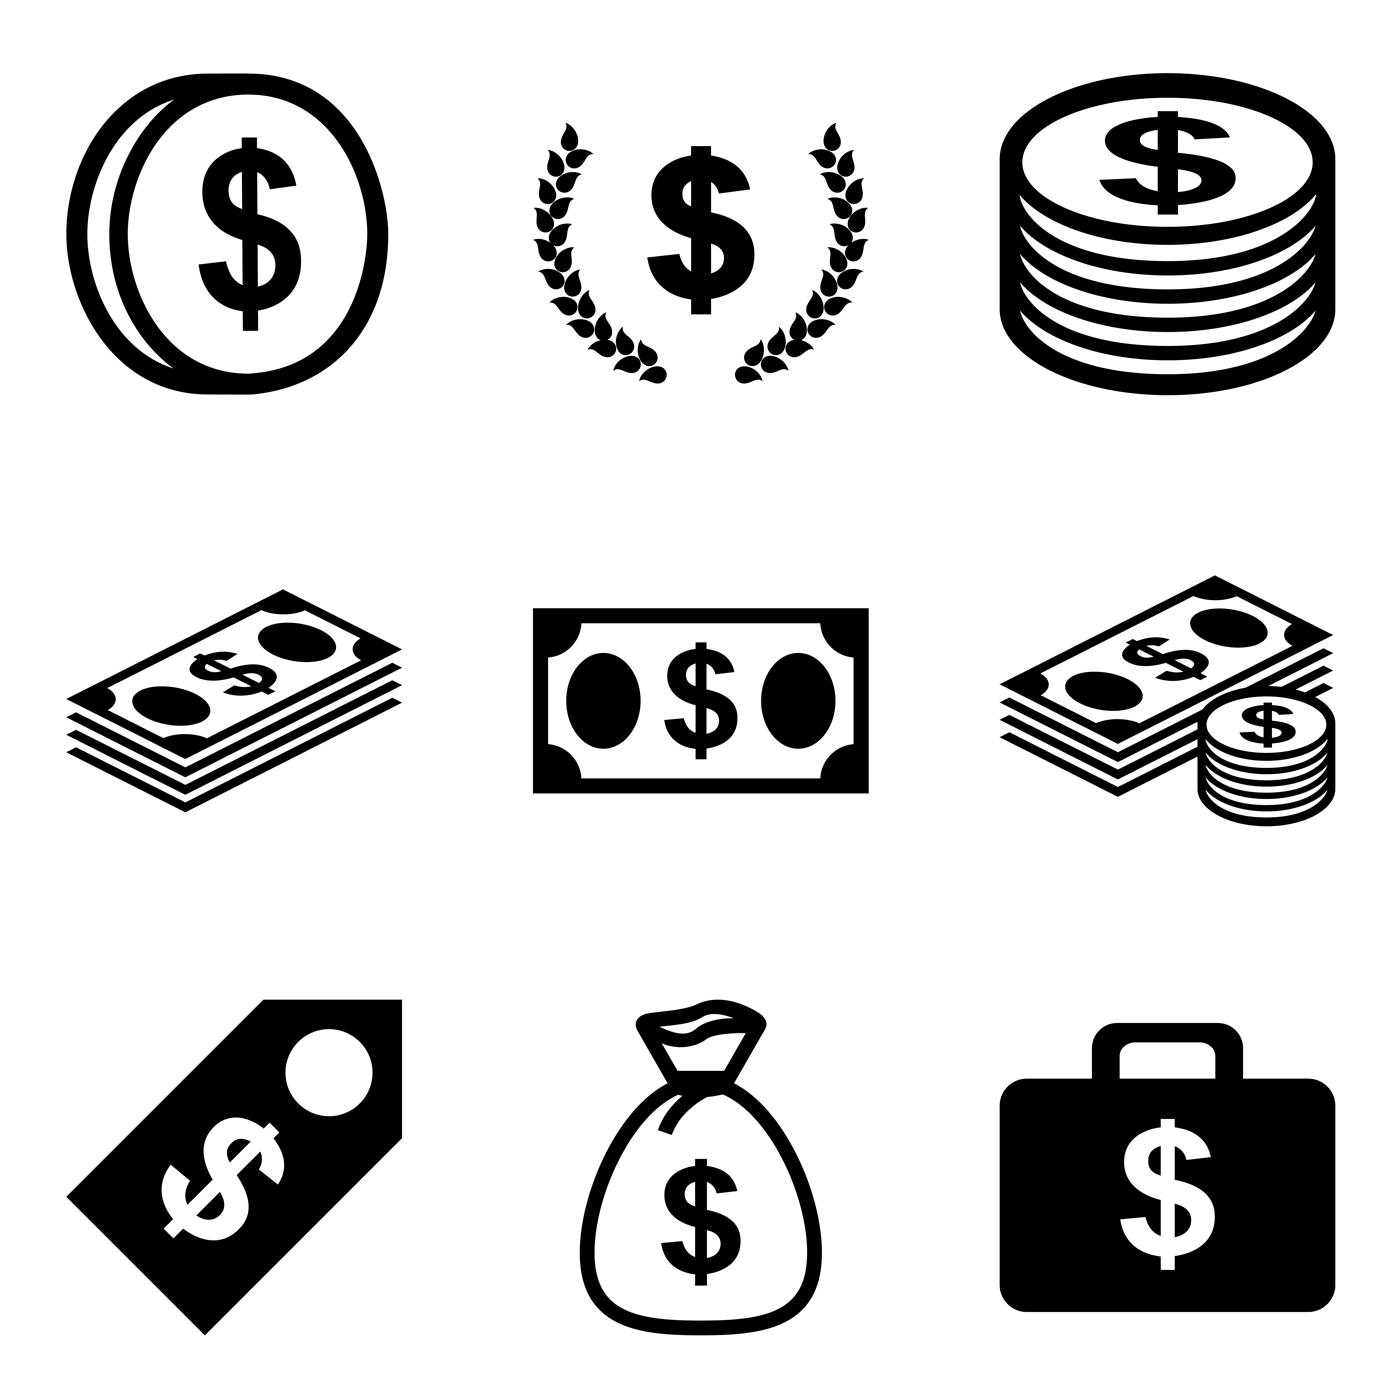 coins and bills clipart